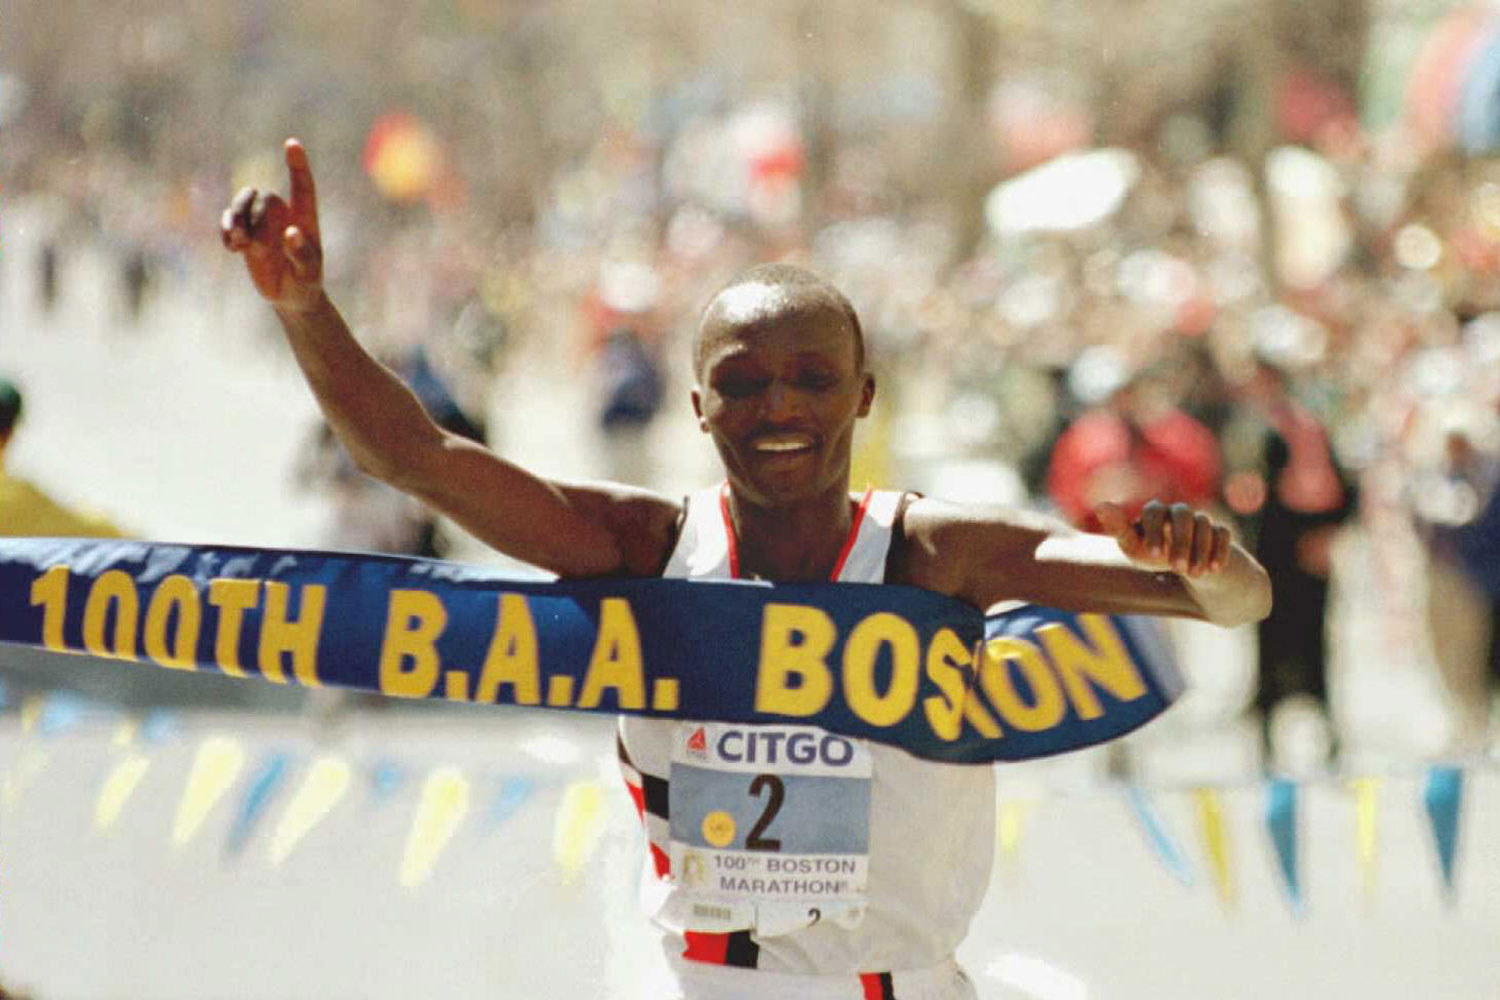 Moses Tanui crosses the finish line to win the men's division in the 100th running of the Boston Marathon.